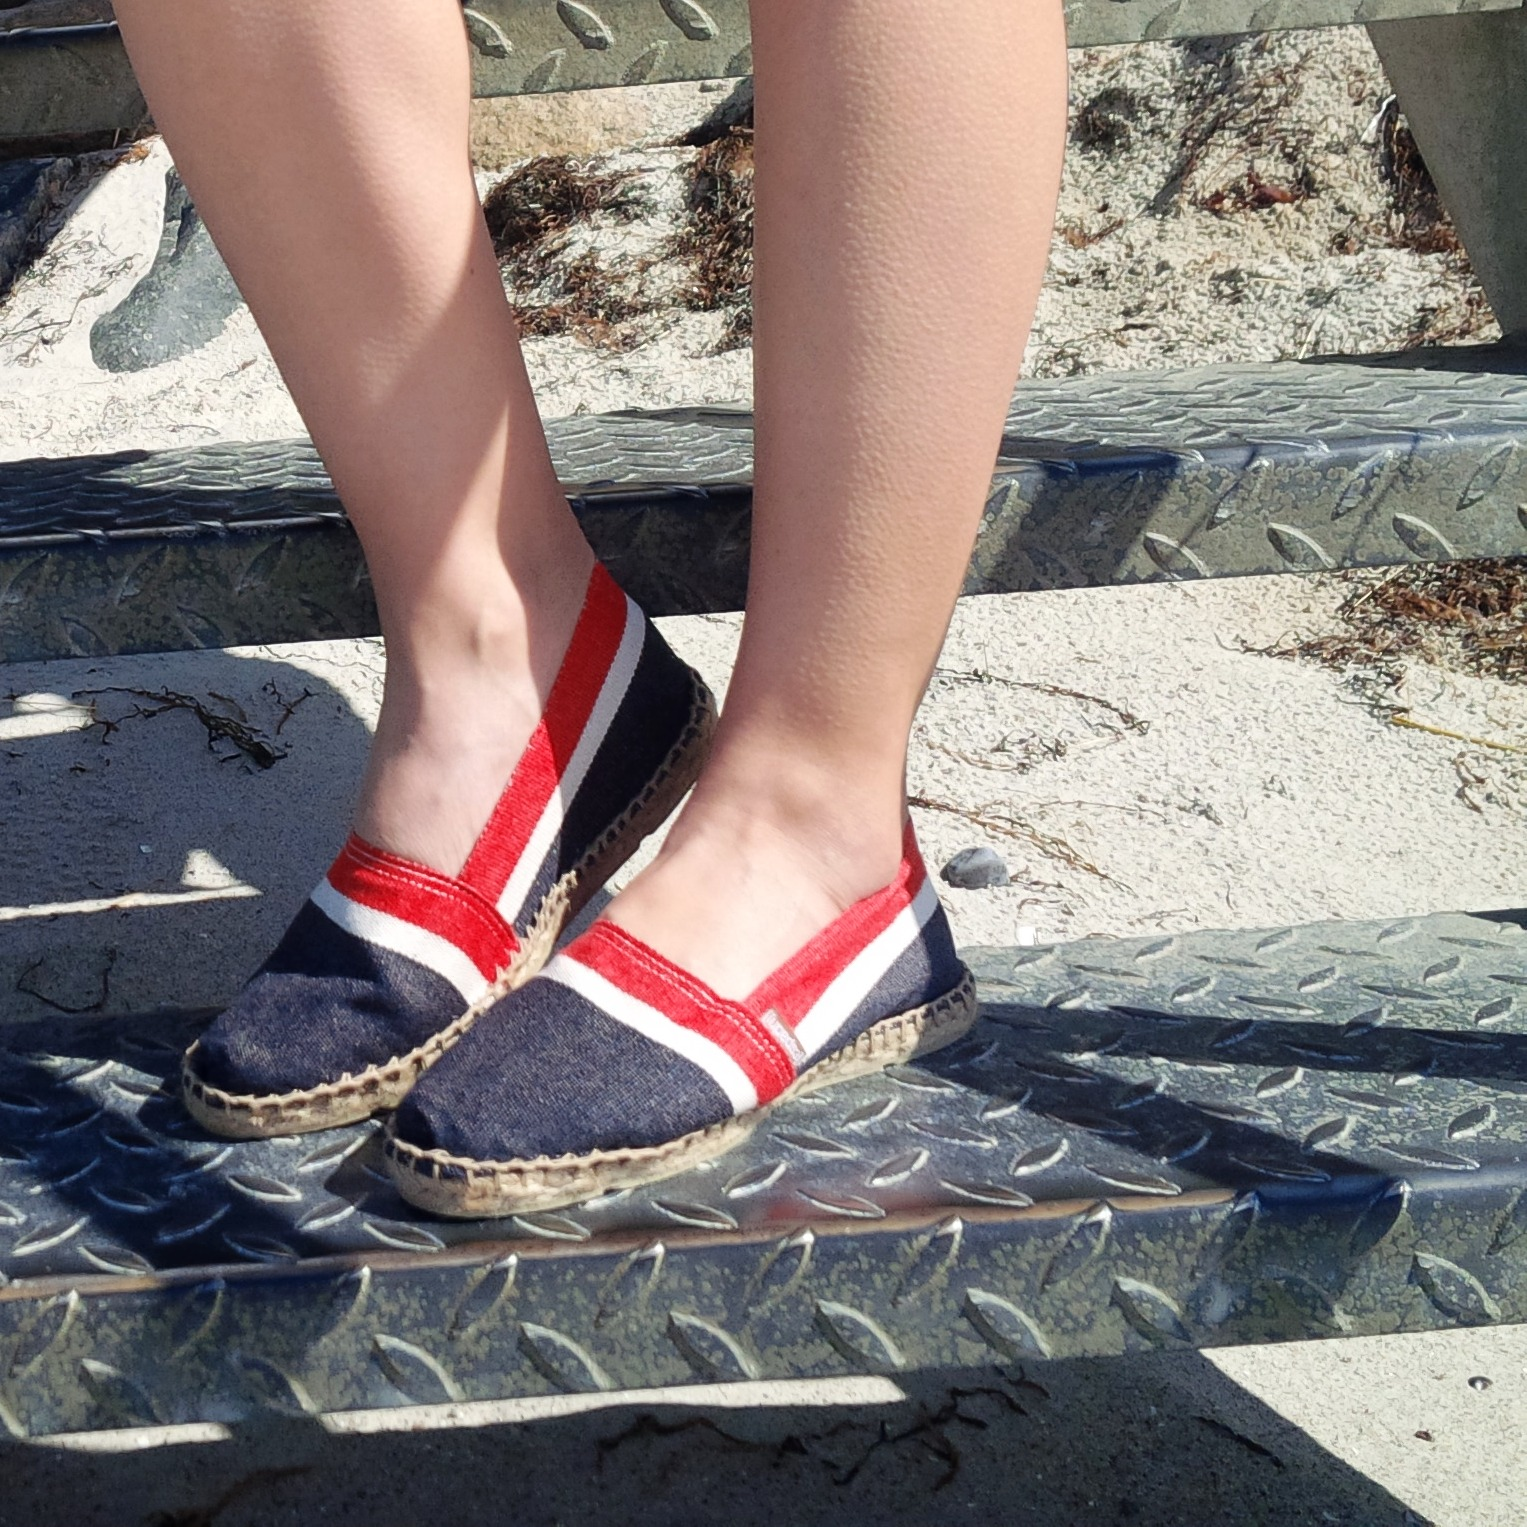 Summer Long Vacation At The Beach. Trend Schuh Espadrilles, Espadrij l'originale. Denim Dress. Lookbook. Liebe was ist (30)